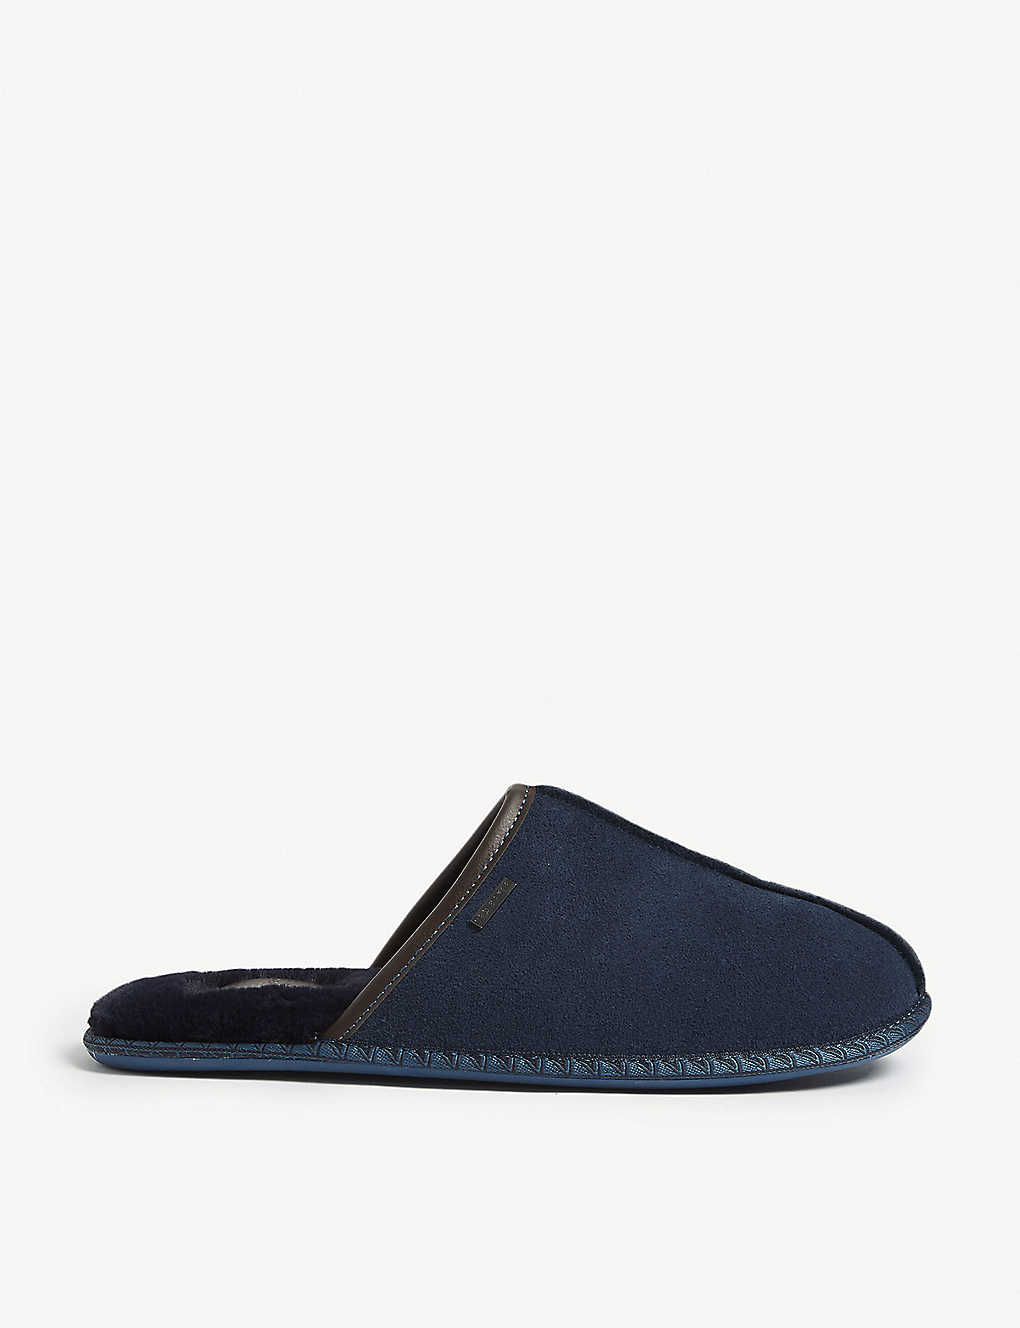 777e5db19 TED BAKER - Patrick suede mule slippers